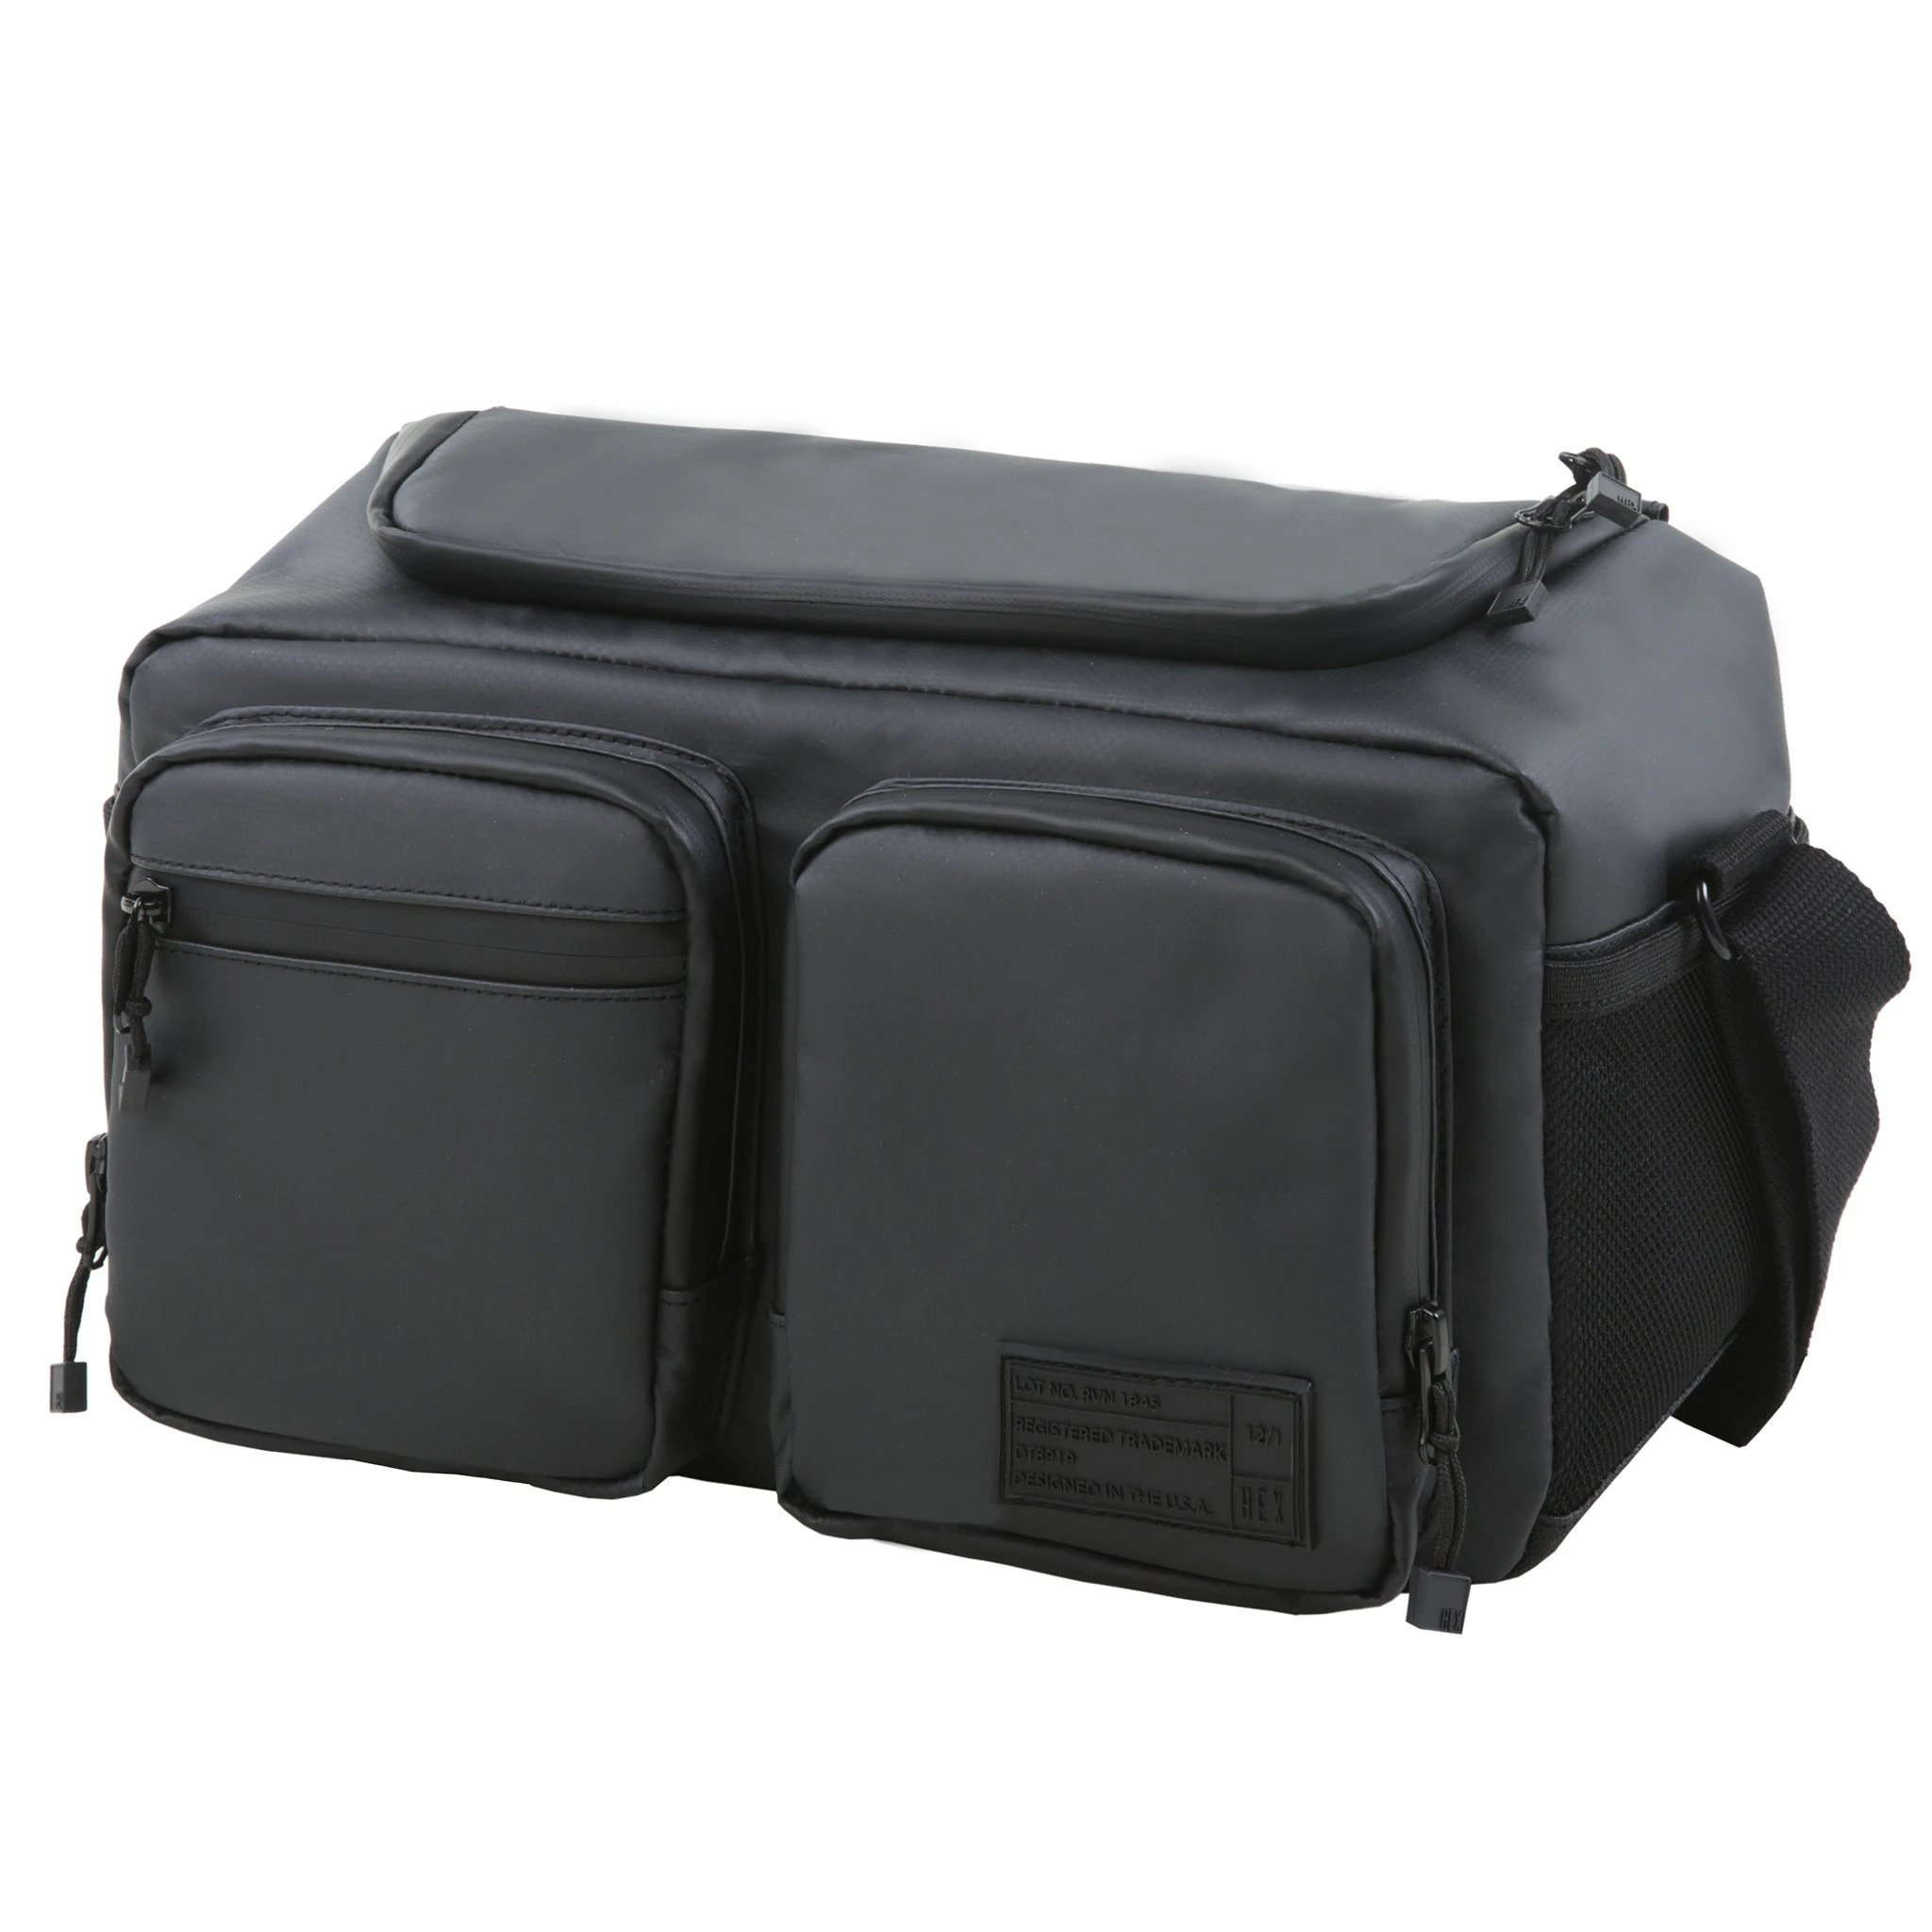 dslr camera bag 5 image